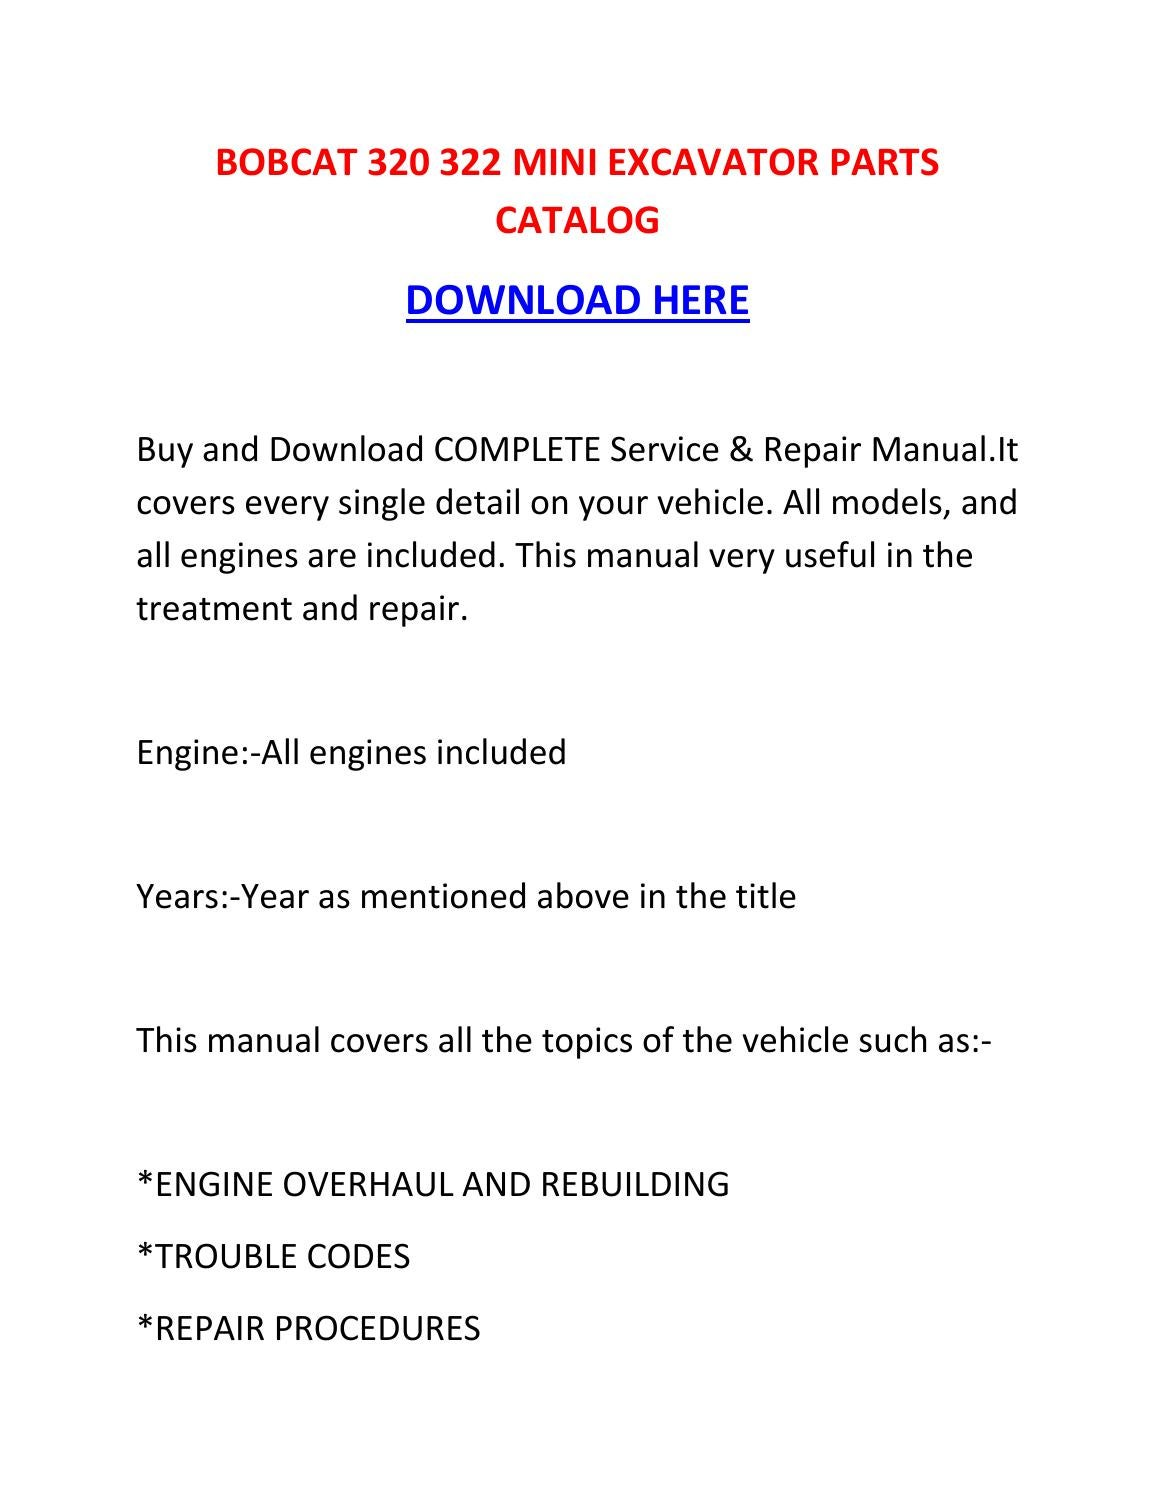 F Fd Ffb E D E B Ced A furthermore Cs Unitec Surface Finisher Lp Air moreover Bobcat Toolcat Service Manual furthermore Bobcat as well D Shuttle Control. on bobcat excavator wiring schematics